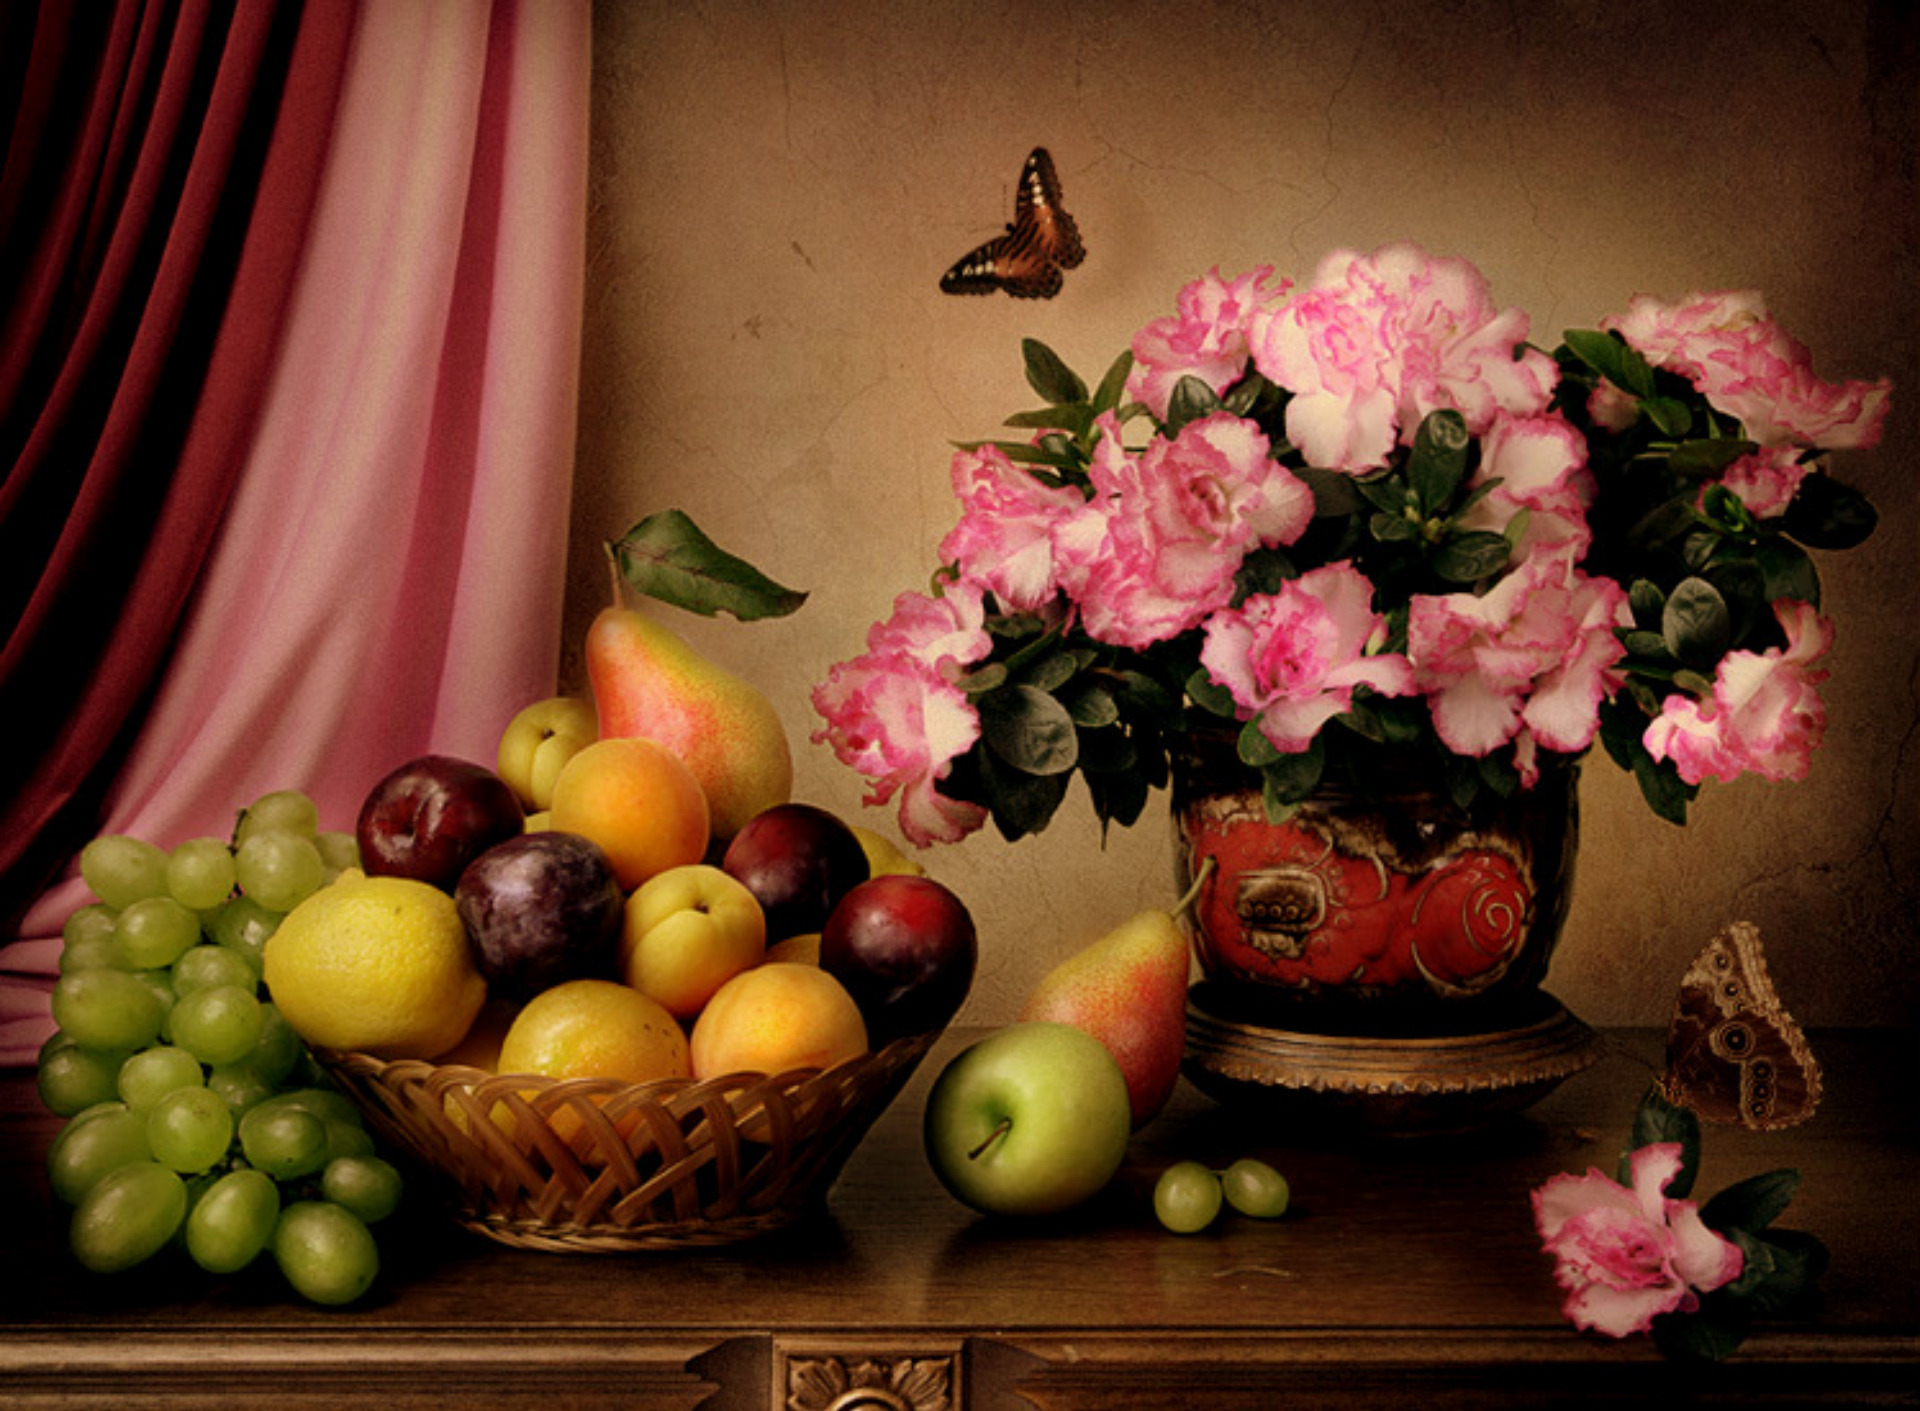 Desktop wallpaper fruits and flowers -  Free Desktop Wallpaper Spring Fruits Wallpapersafari Flowers